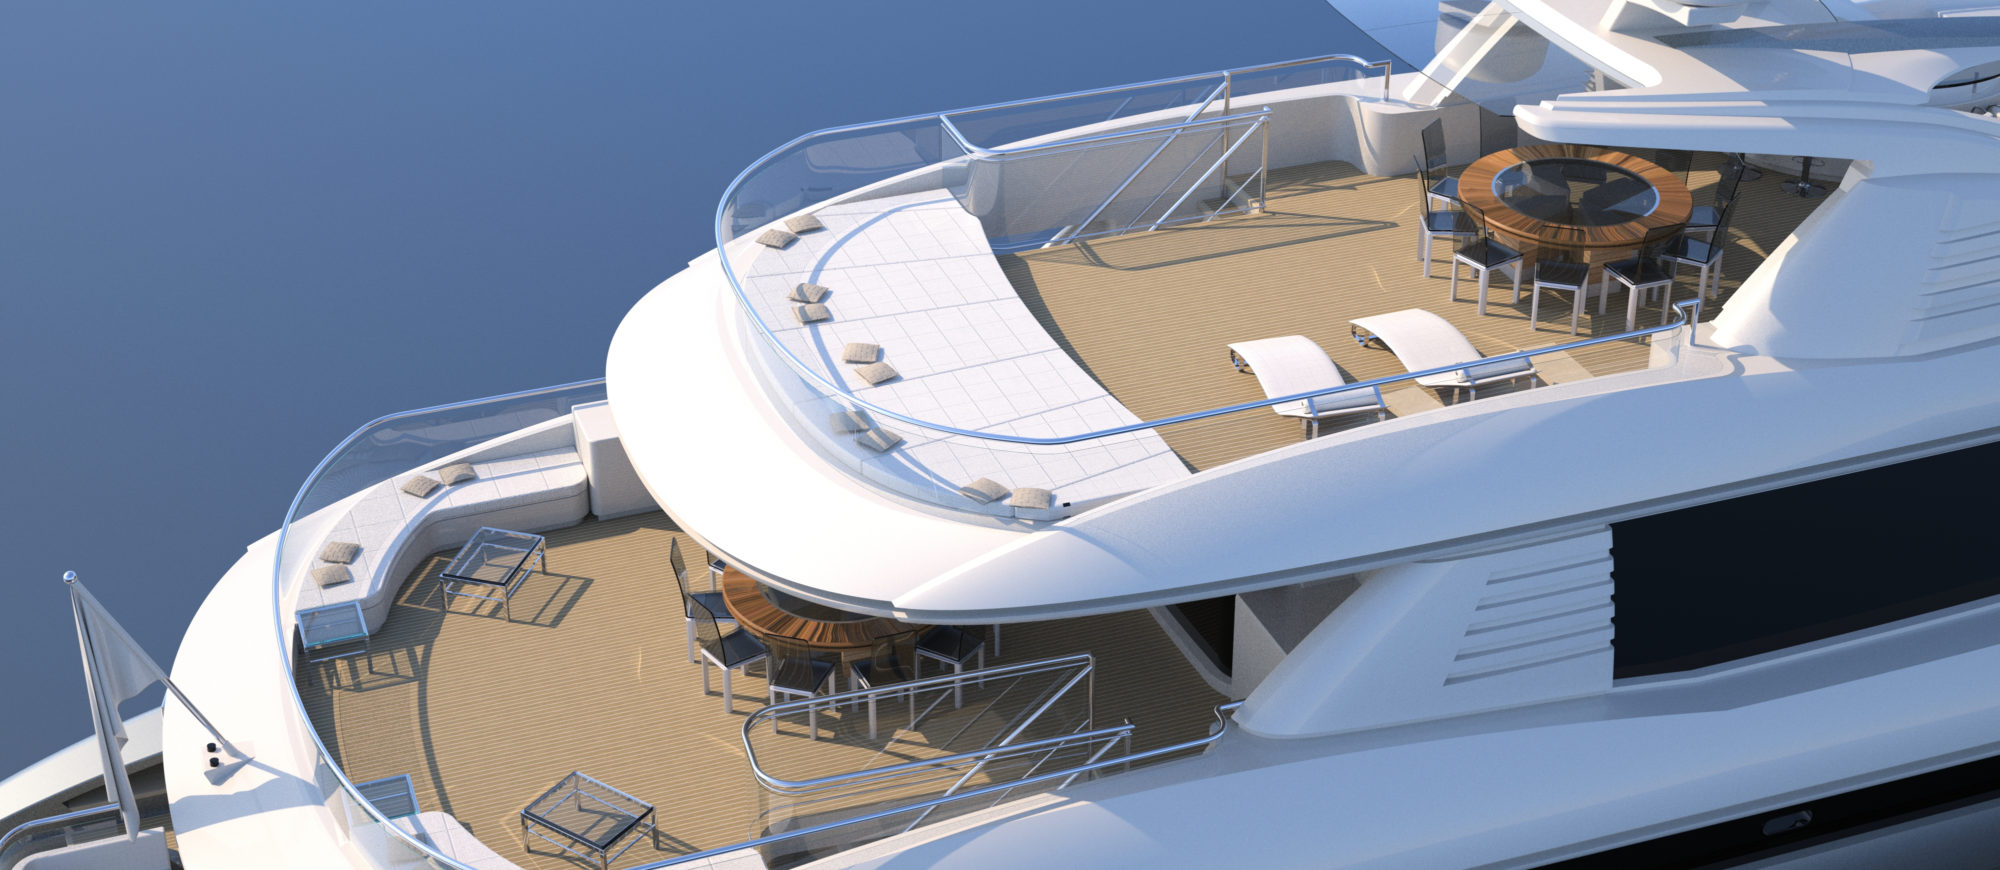 Conrad C166 Superyacht Concept Vallicelli Visualisation Decks